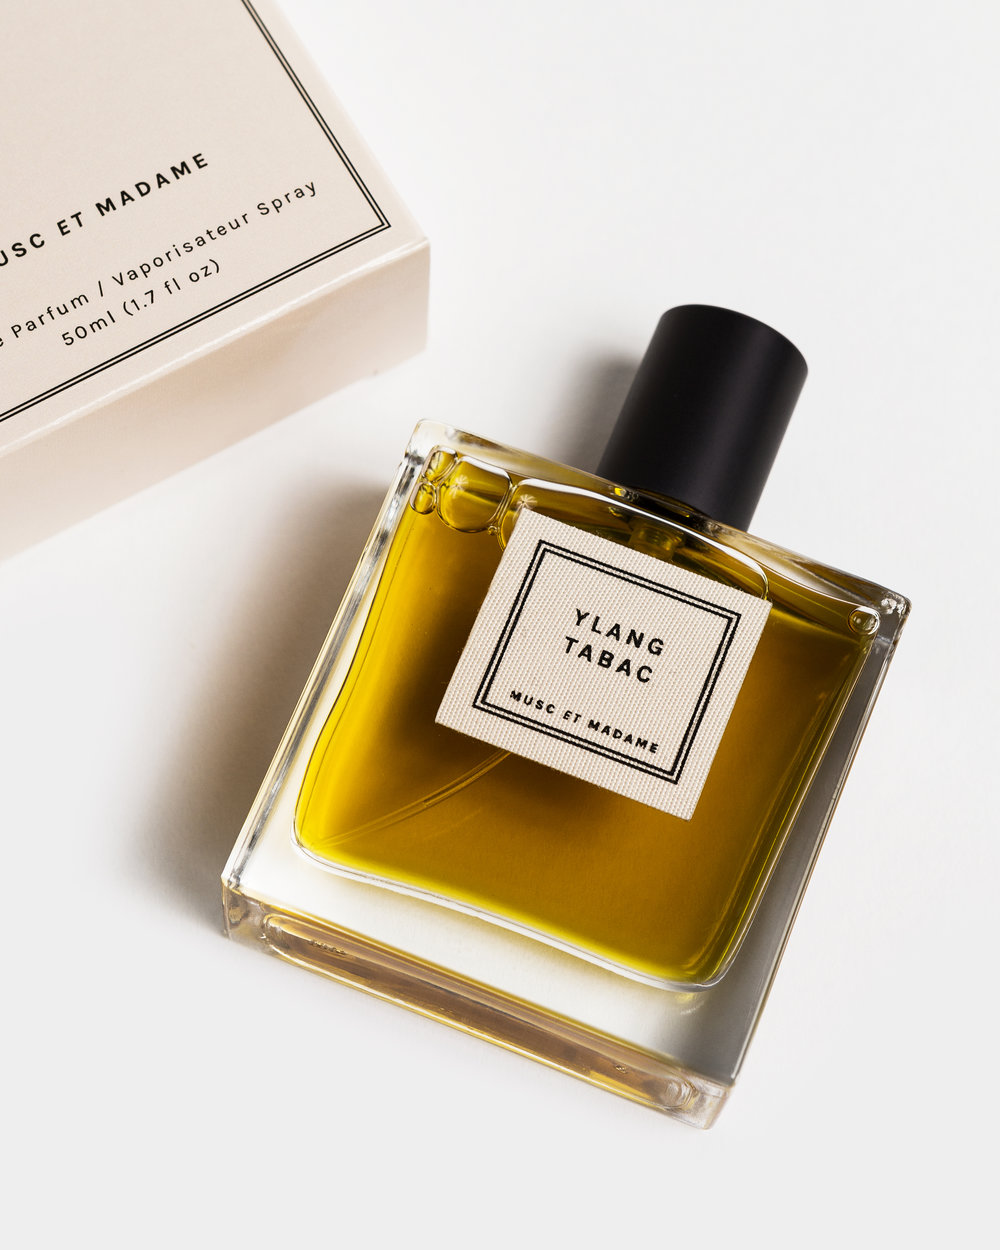 MUSC ET MADAME Warm and intimate, Musc et Madame is a niche fragrance line with a voluptuous mystique. Their hypnotic parfums pair floral absolutes with animalistic musks, resulting in tousled, dirty florals that balance demure and dominant sensuality.